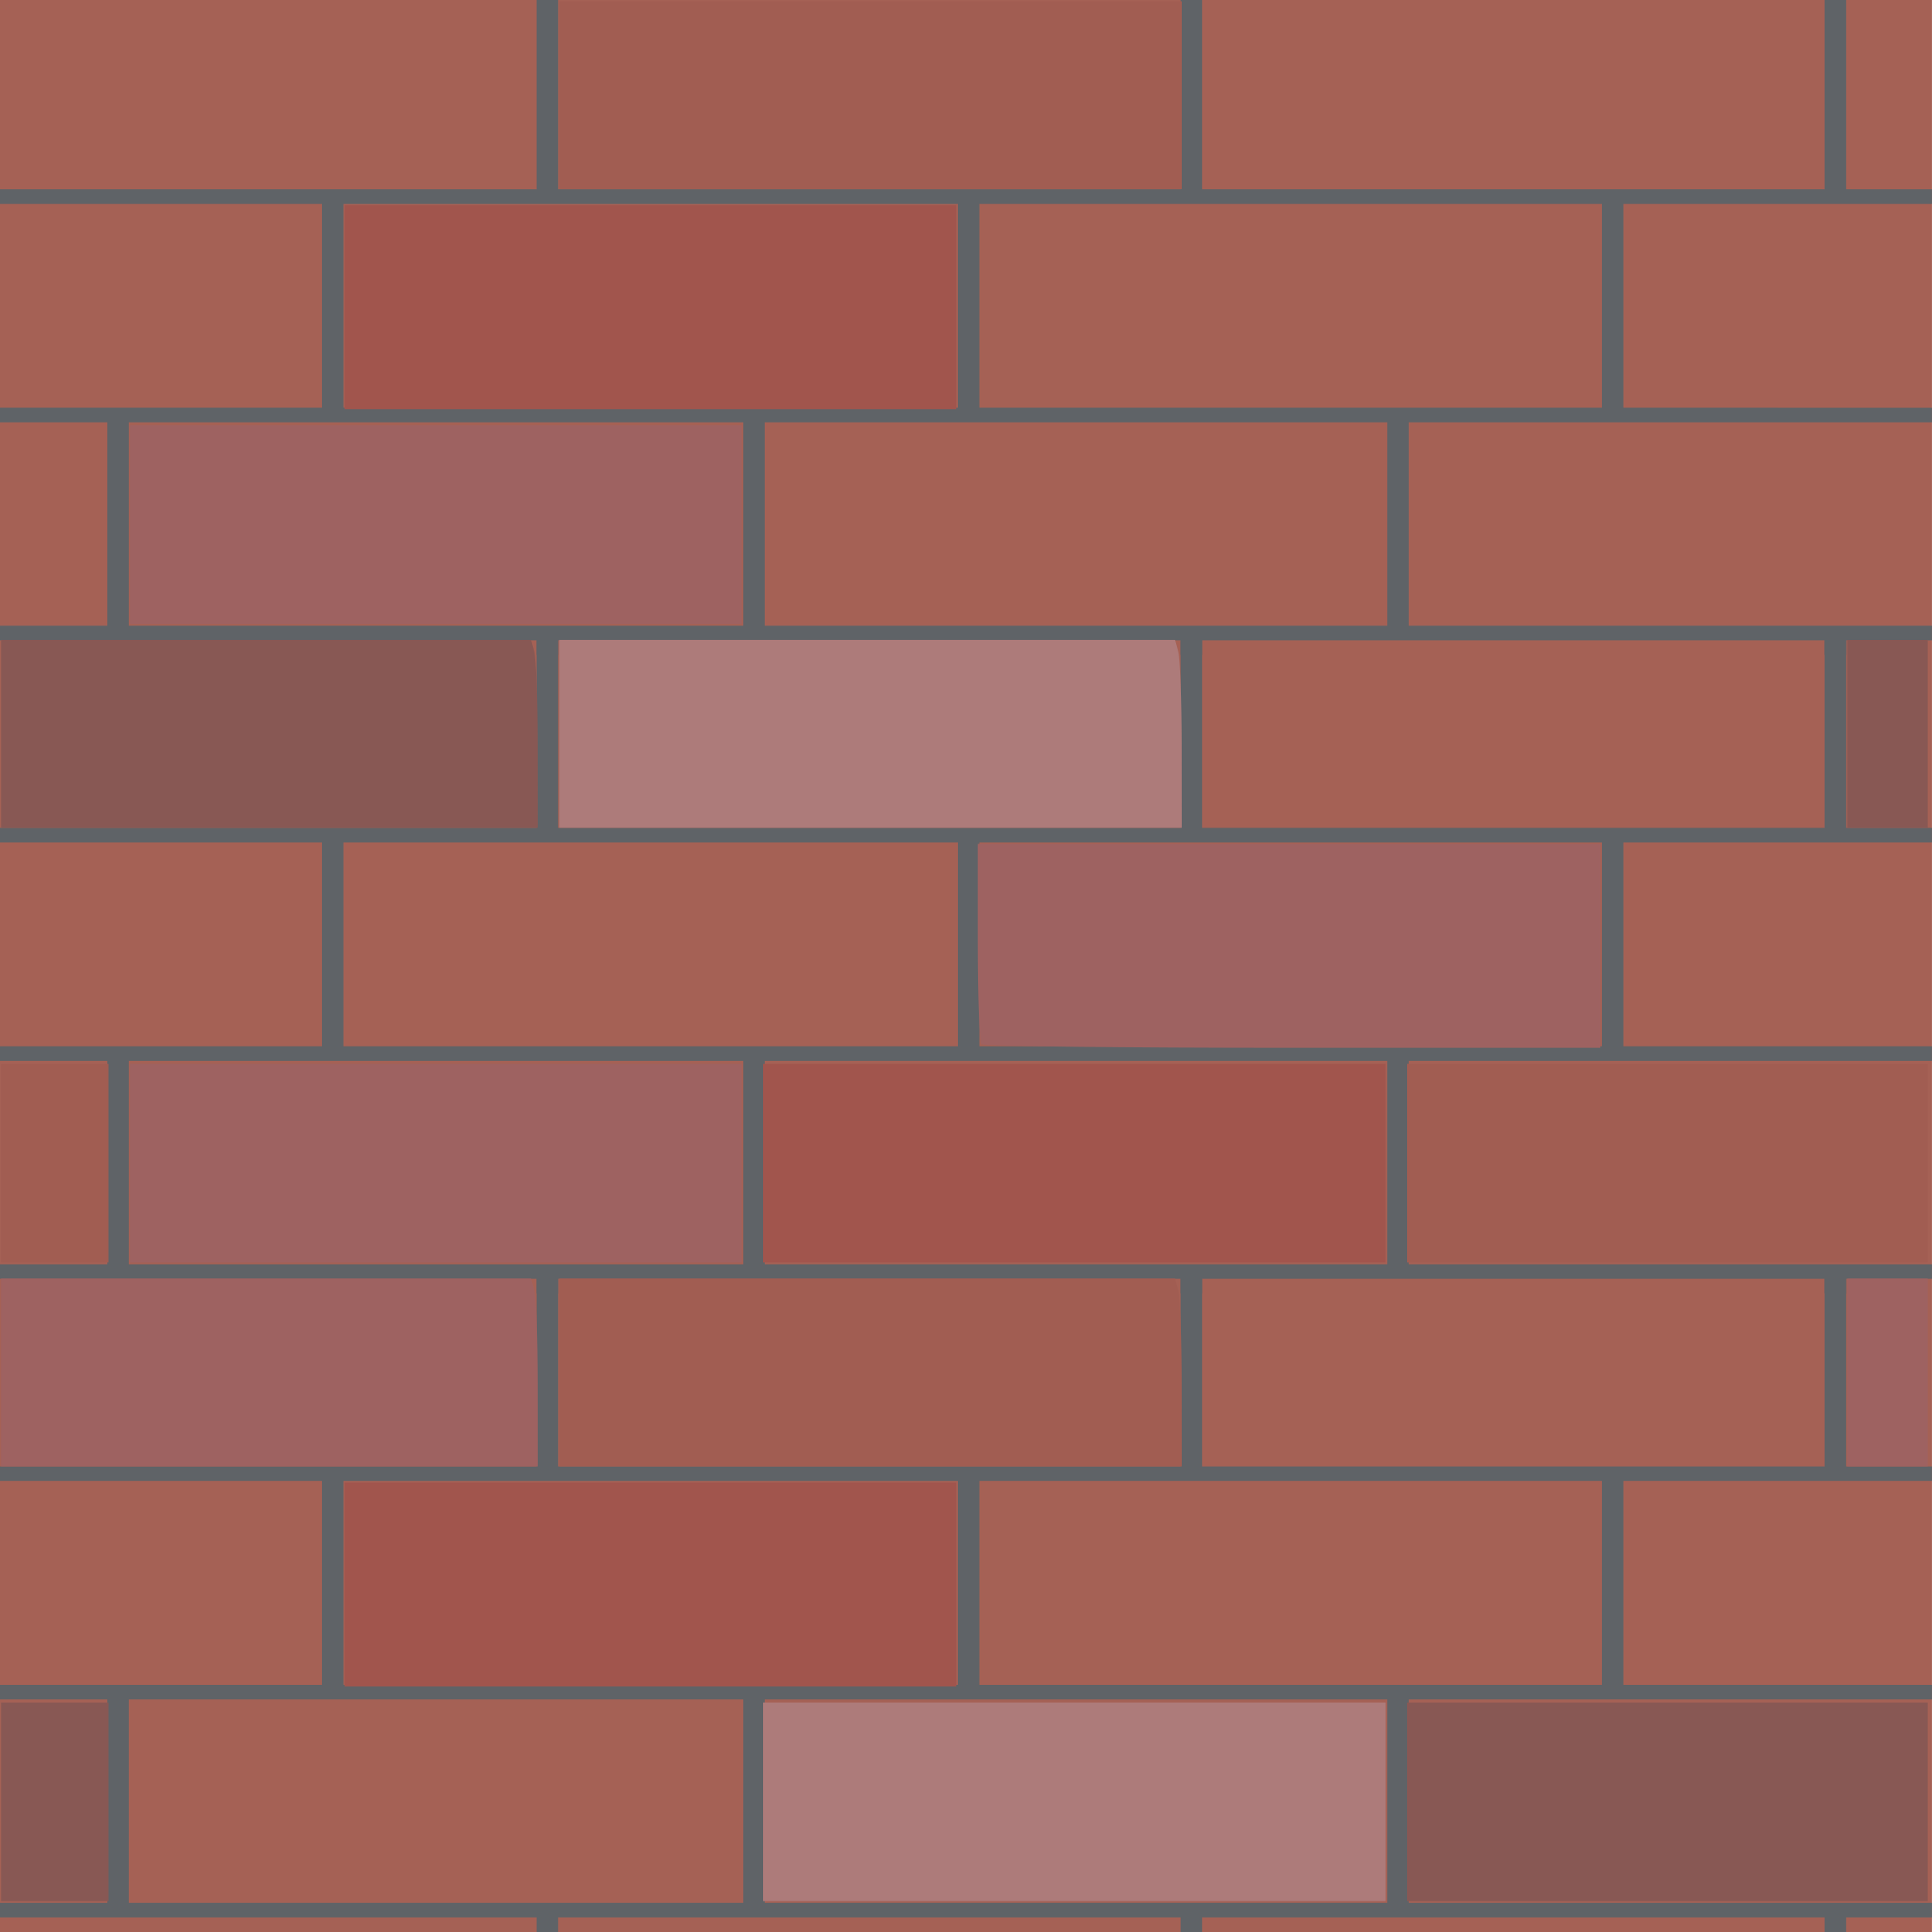 brick tile by rg1024